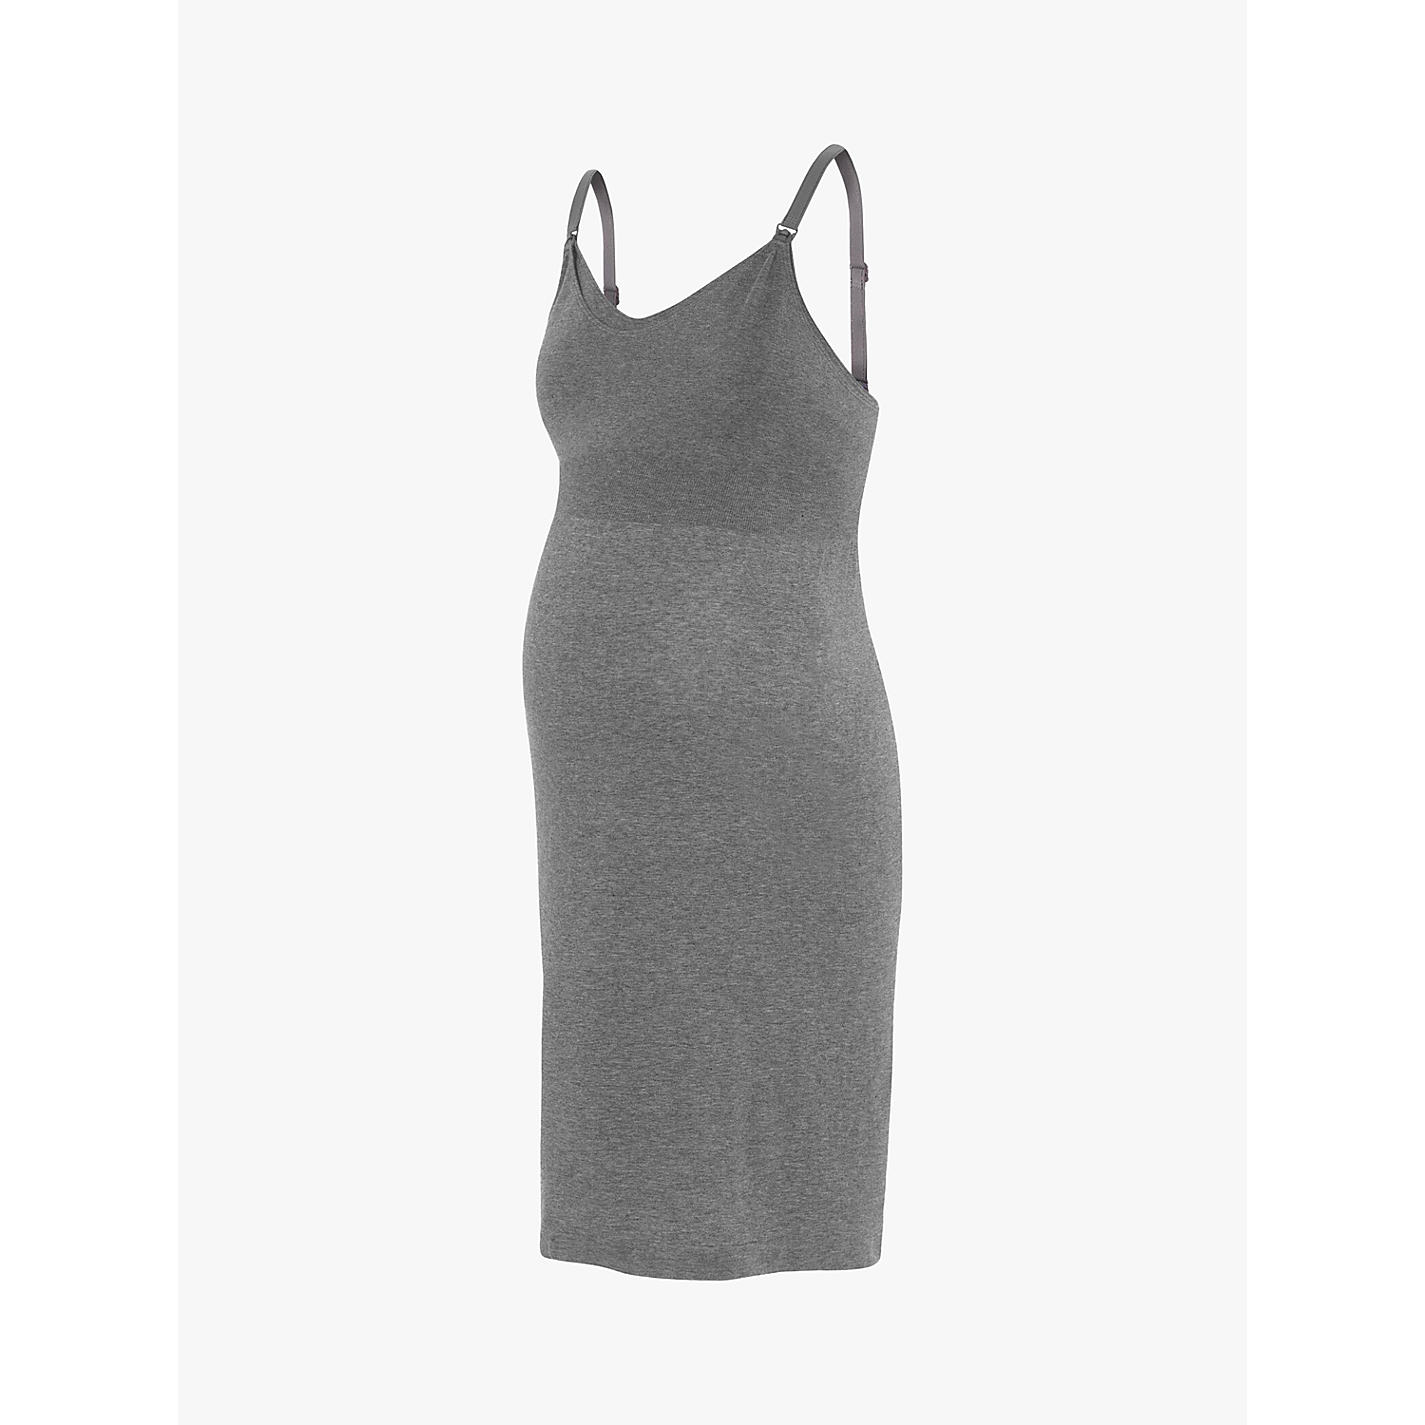 Buy sraphine georgia seamless maternity nightdress grey marl buy sraphine georgia seamless maternity nightdress grey marl online at johnlewis ombrellifo Image collections